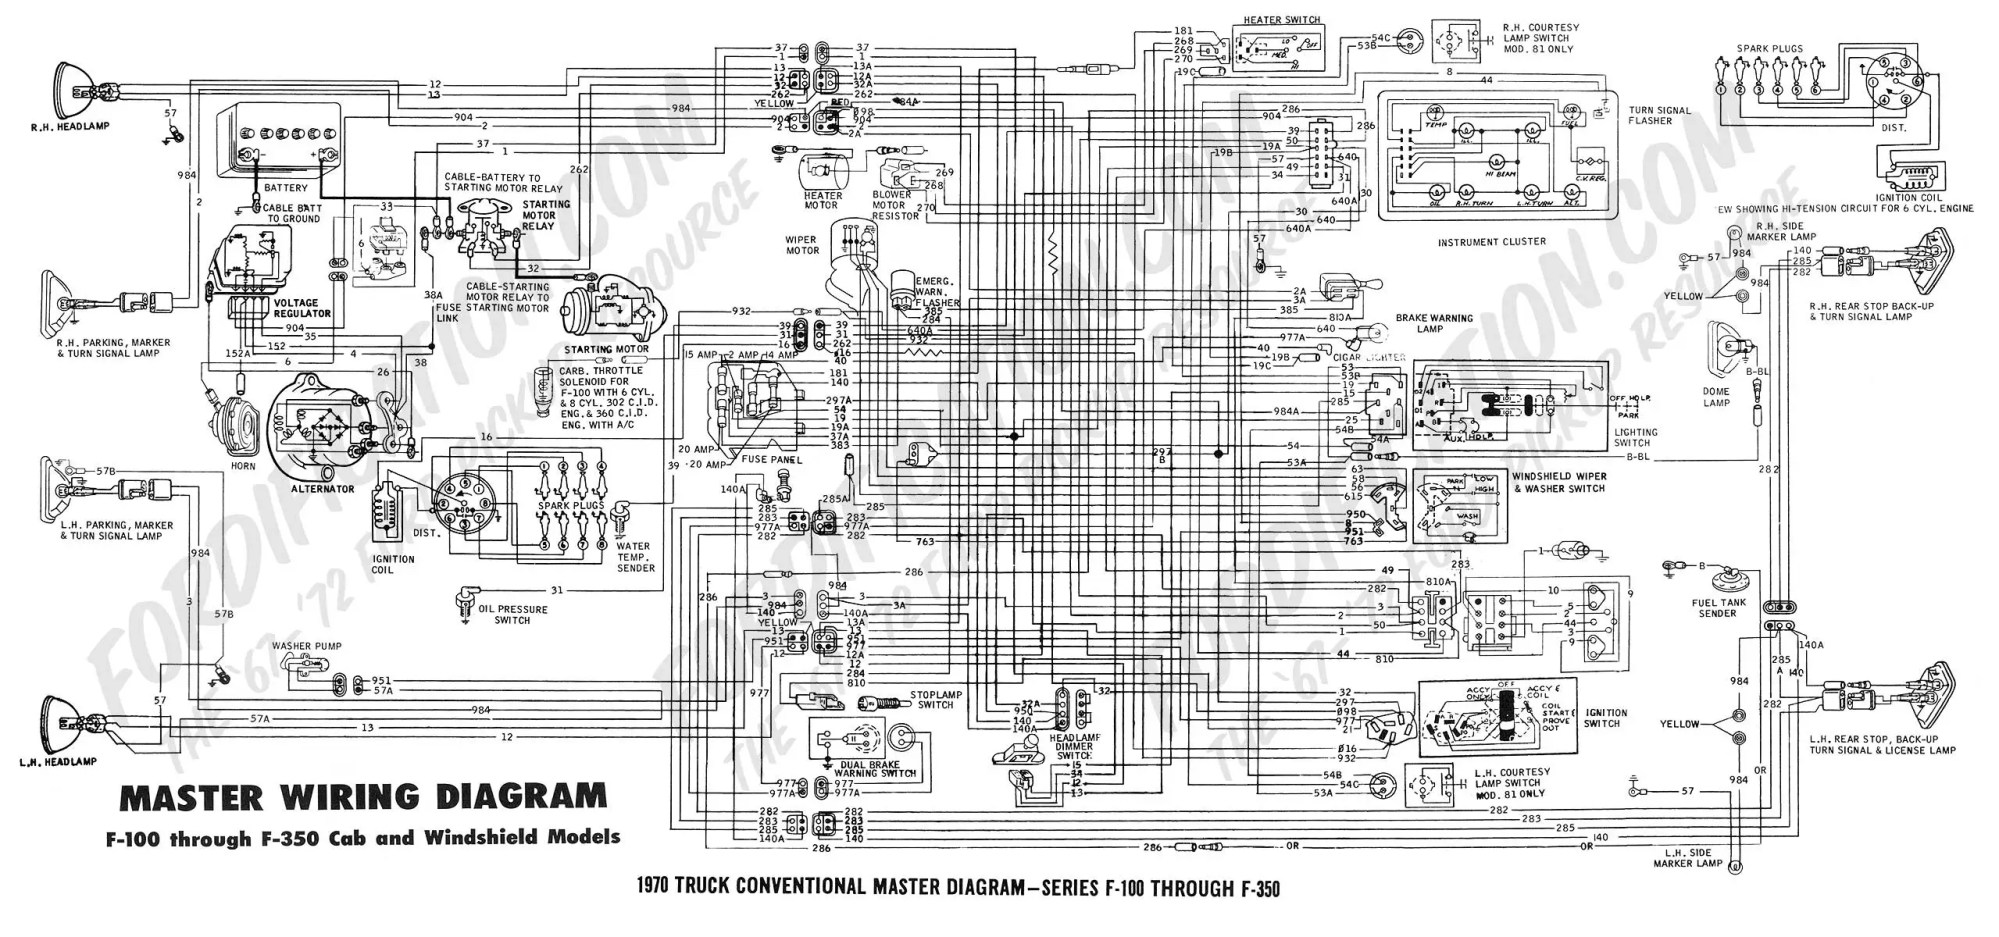 hight resolution of 2002 ford f350 wiring diagram wiring diagram paper 2002 ford f150 ignition switch wiring diagram 2002 ford f150 wiring diagram